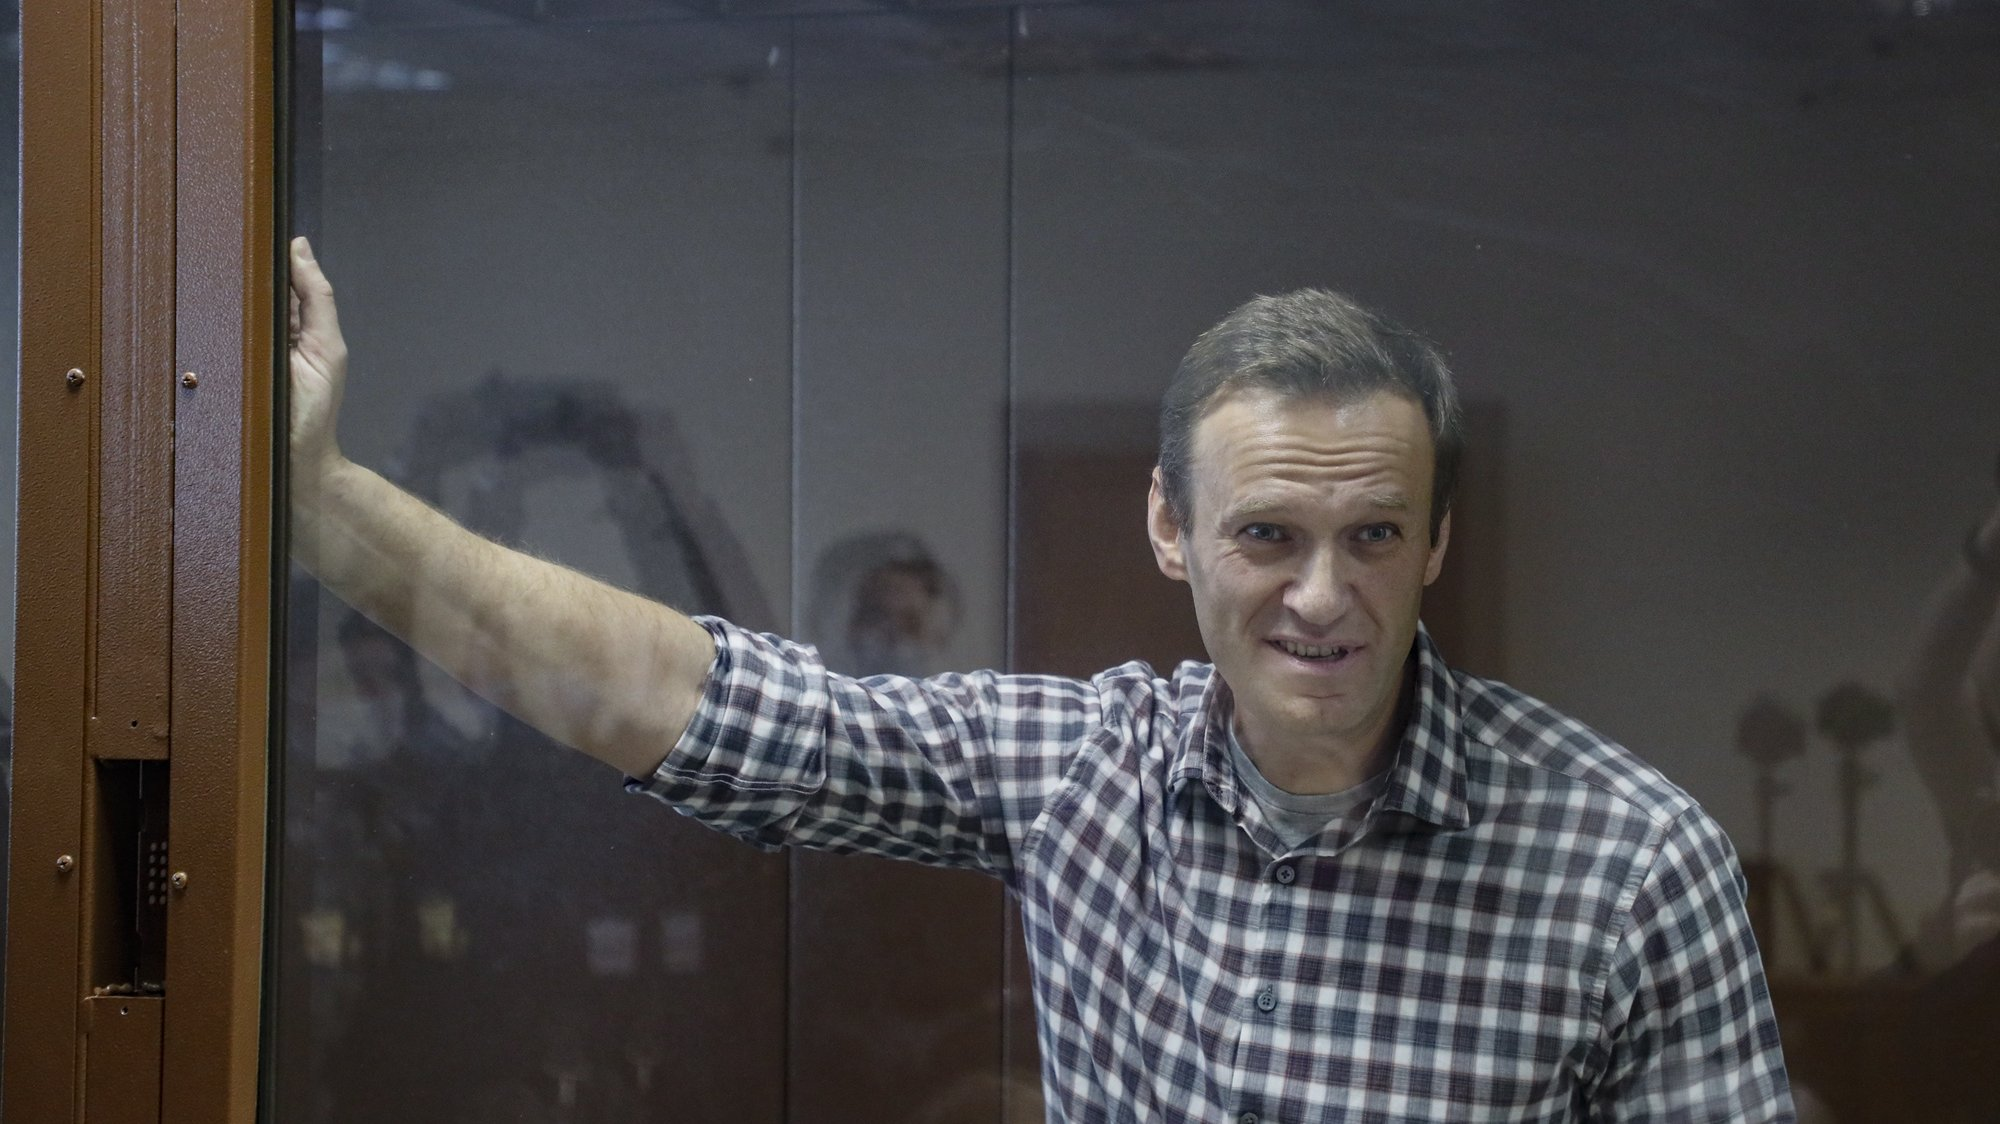 epa09025238 Russian opposition leader Alexei Navalny stands inside a glass cage prior to a hearing at the Babushkinsky District Court in Moscow, Russia, 20 February 2021. The Moscow City court will hold a visiting session at the Babushkinsky District Court Building to consider Navalny's lawyers appeal against a court verdict issued on 02 February 2021, to replace the suspended sentence issued to Navalny in the Yves Rocher embezzlement case with an actual term in a penal colony.  EPA/YURI KOCHETKOV MANDATORY CREDIT